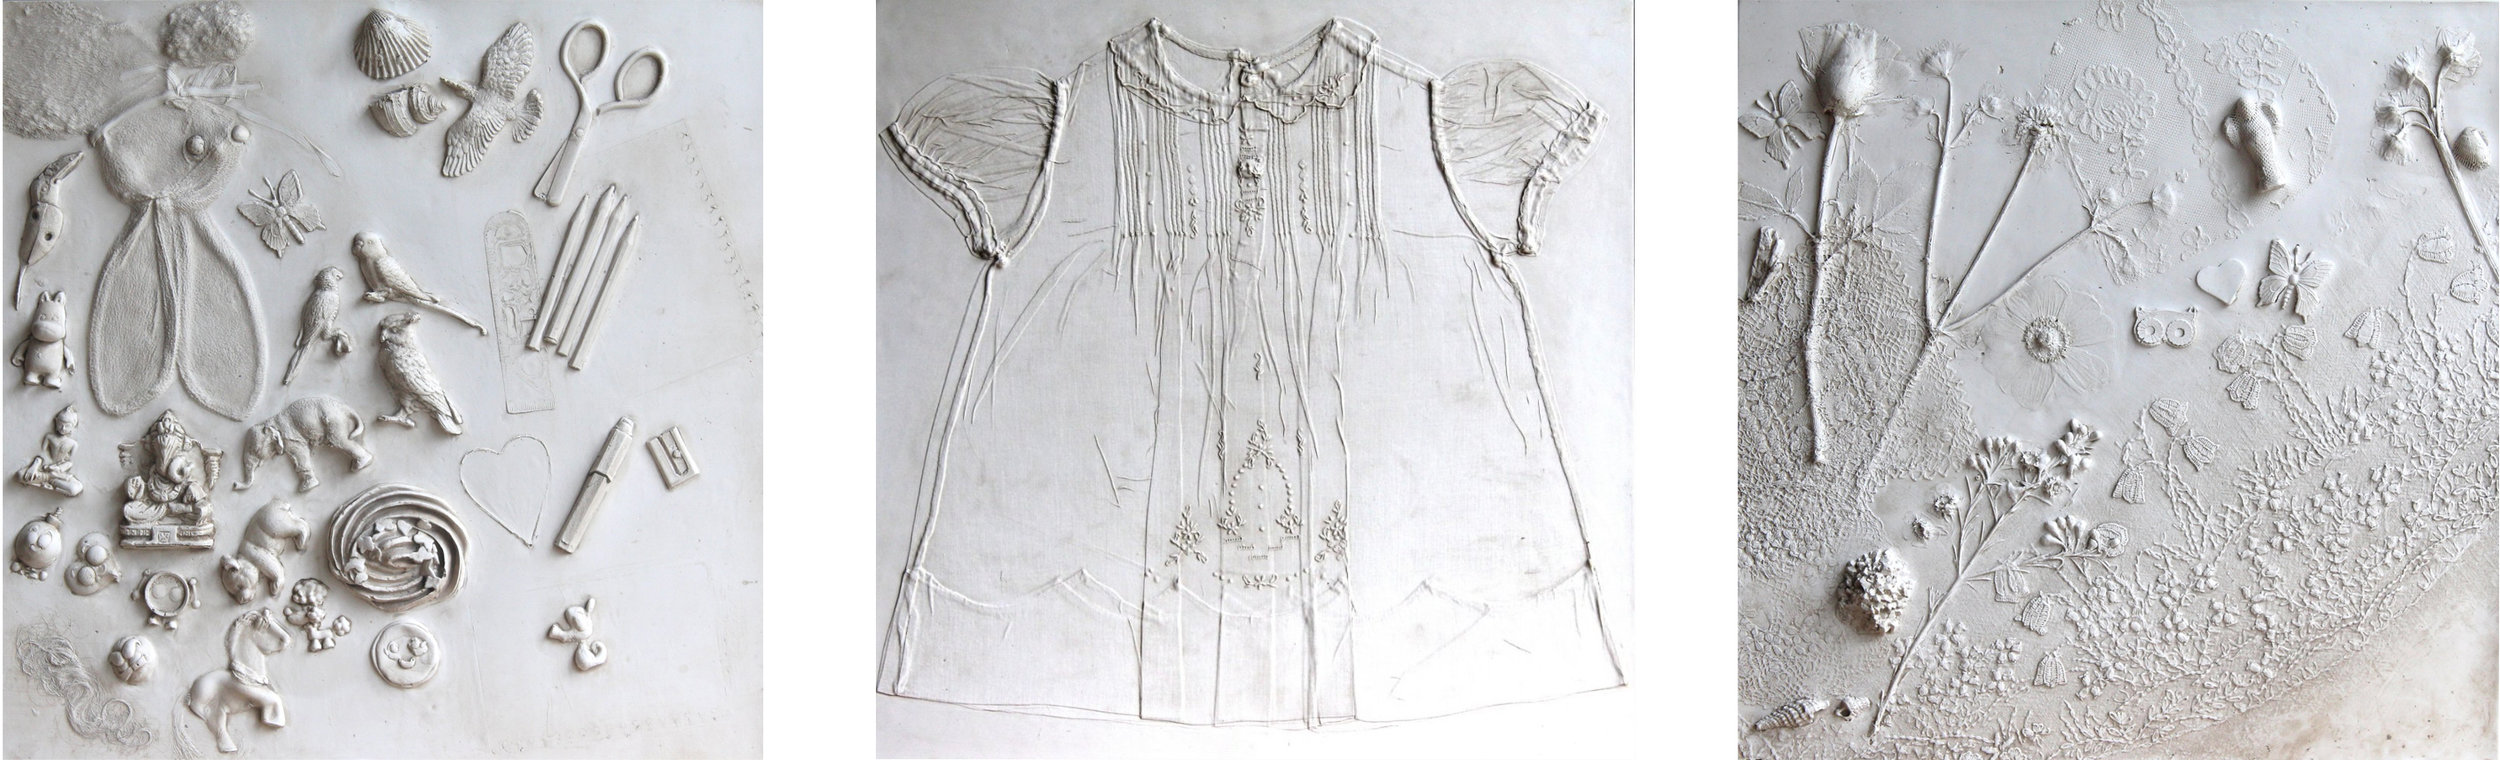 A group of commissioned panels: on the right and left, two panels from a family portrait including objects dear to family members; in the middle, a dress from the 1930s with sentimental value to the client.